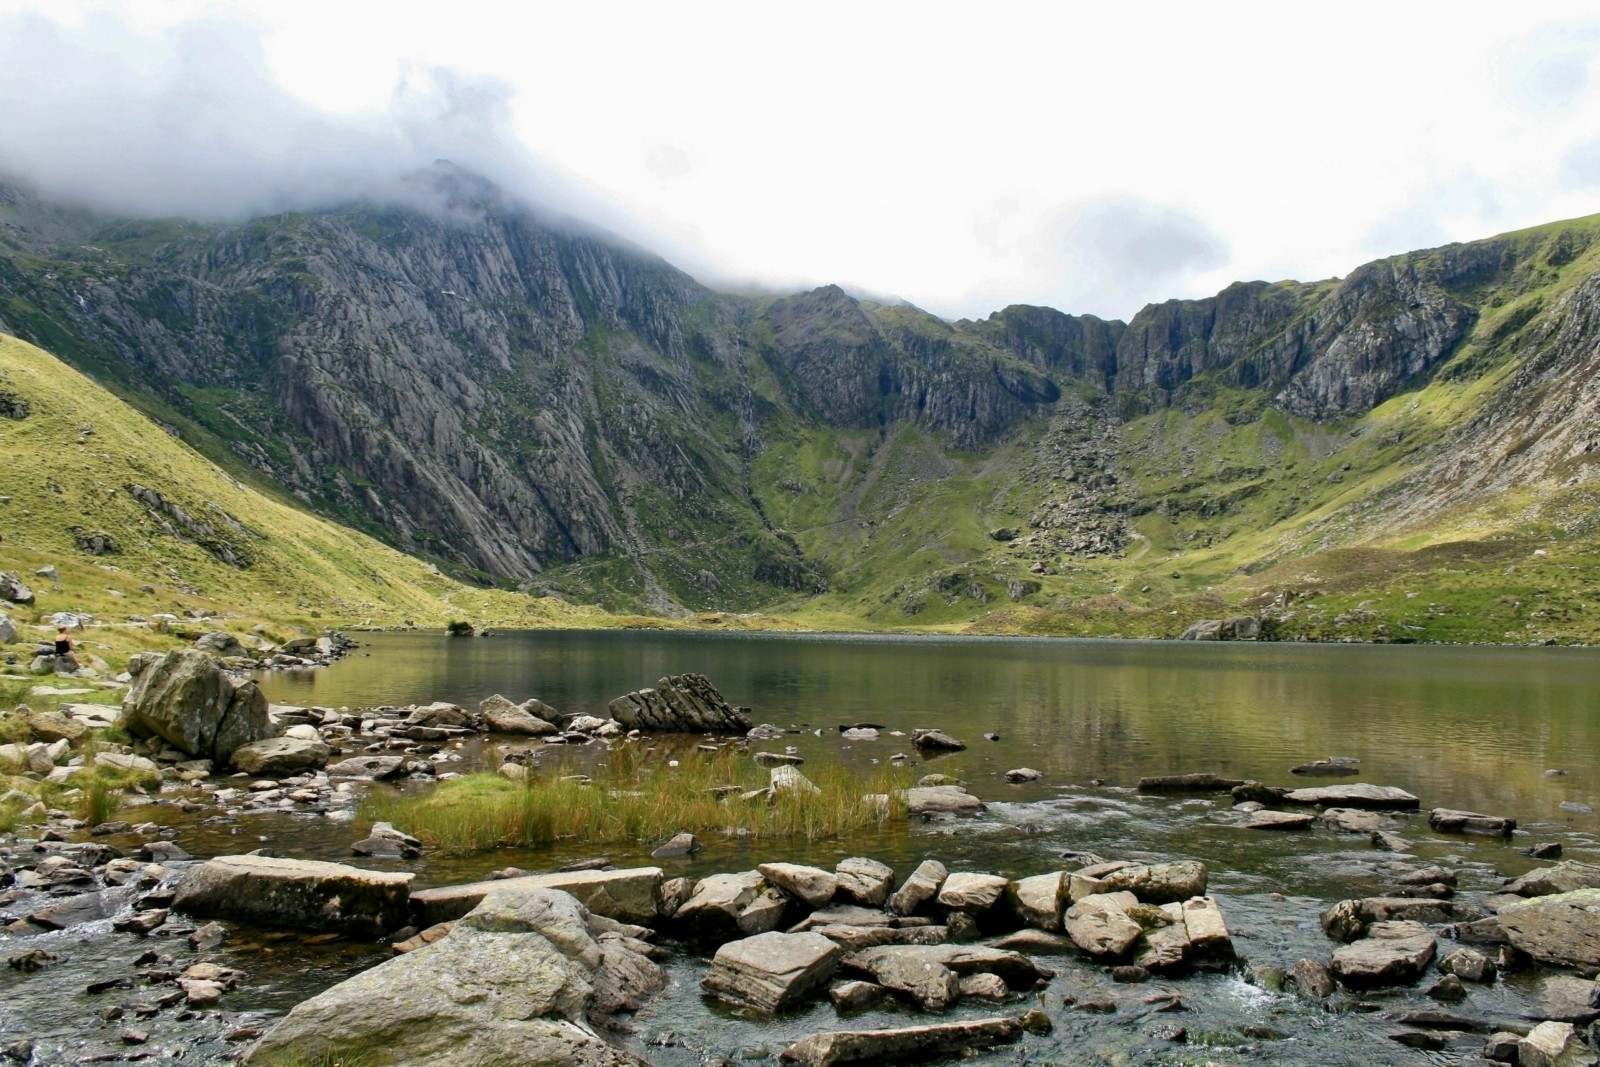 Cwm Ideal, a cwm (corrie) in Snowdonia, Wales.